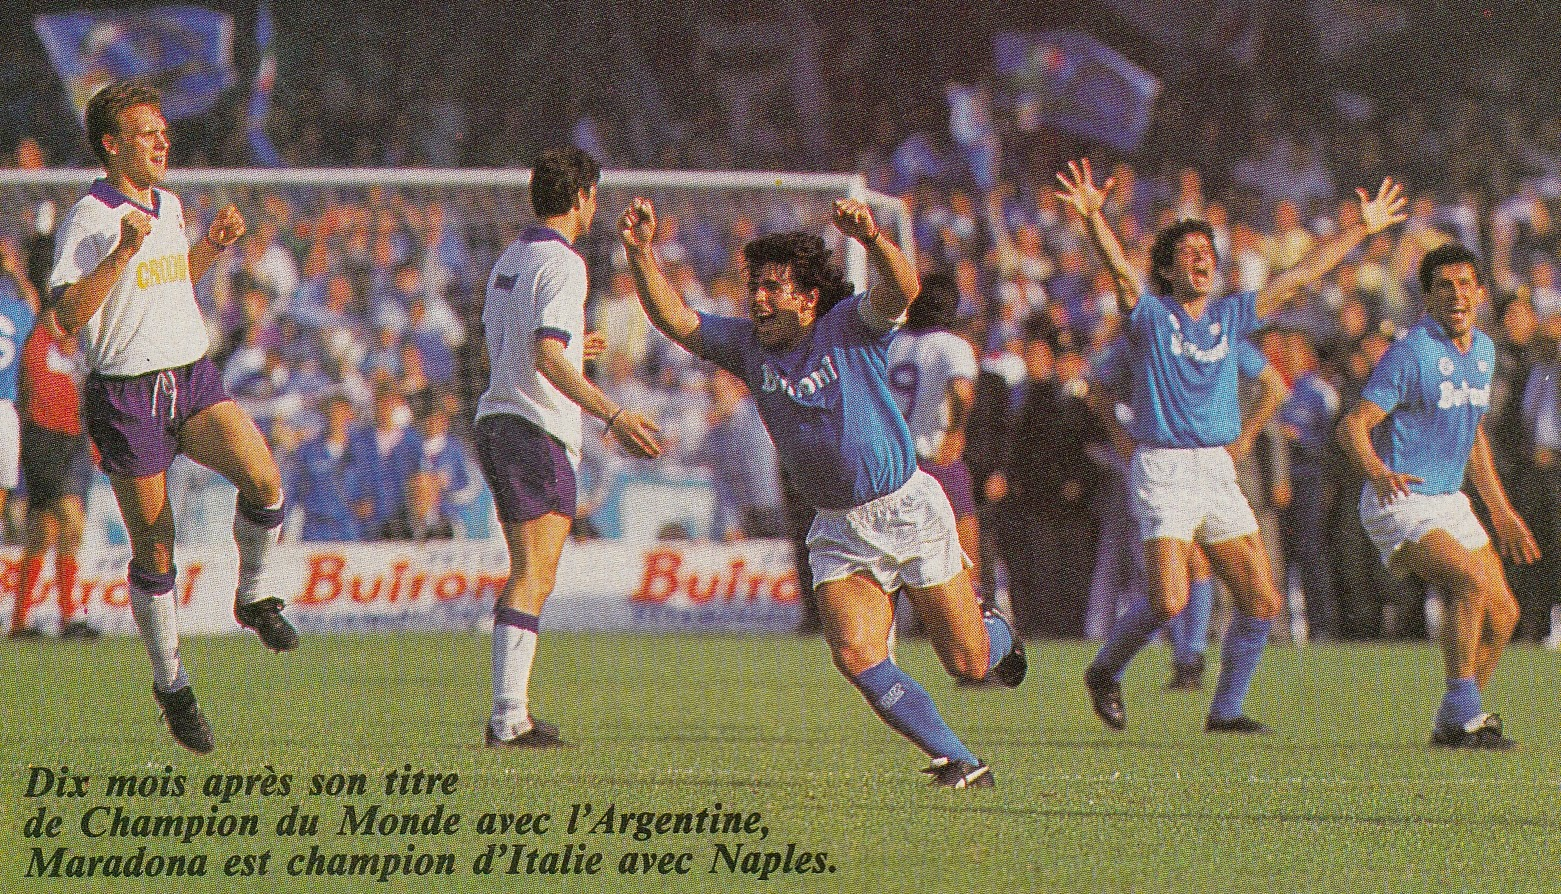 Soccer Nostalgia When Calcio Ruled The Football World A Personal Journey Part Five 1986 87